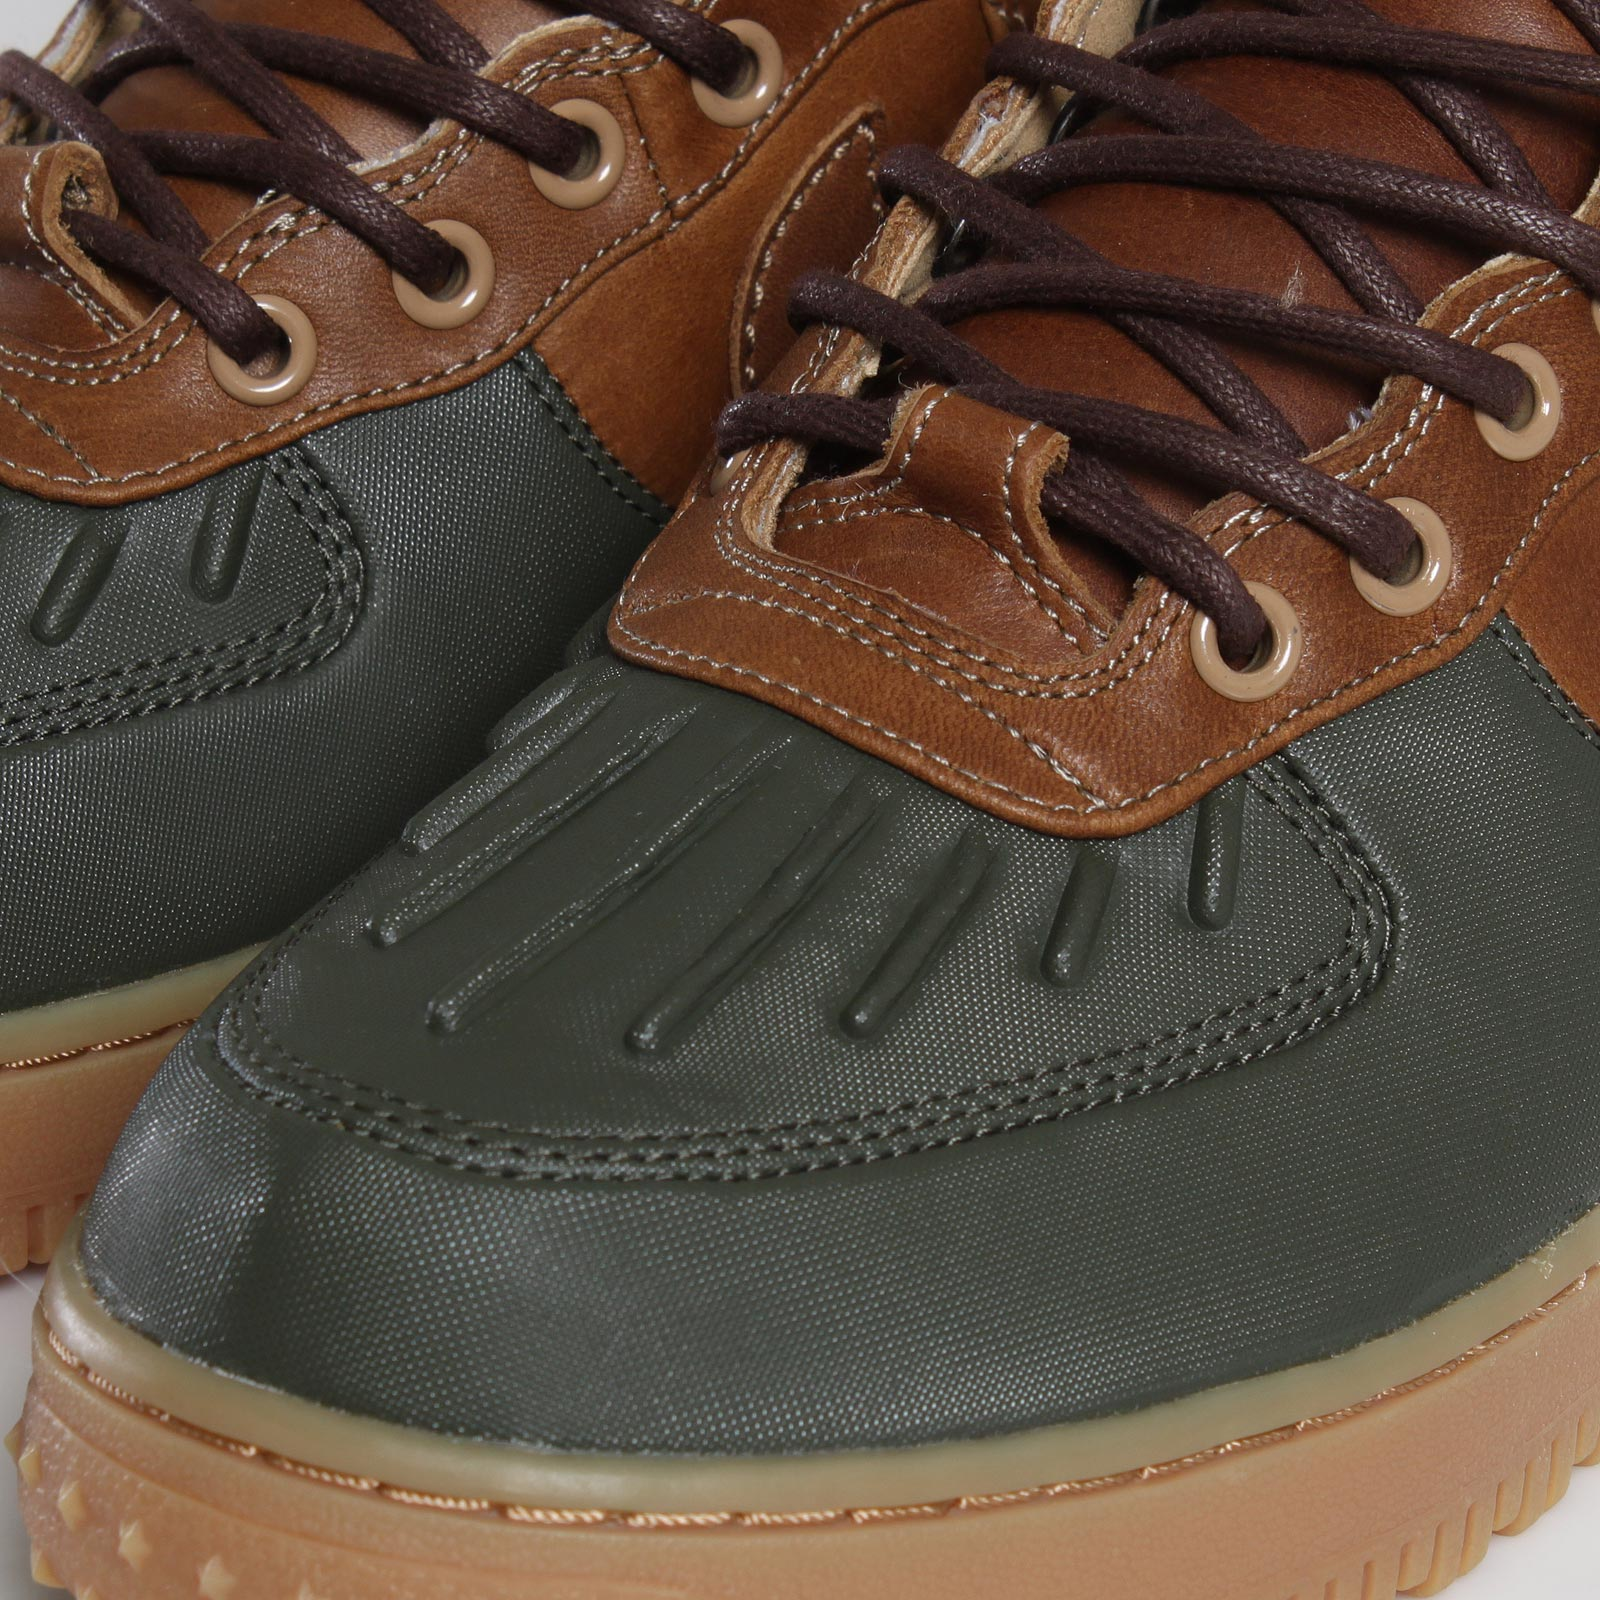 online store 92d7e 46c9f 2cd12 5f6c7  promo code nike air force 1 duckboot 96ccc 4ab37